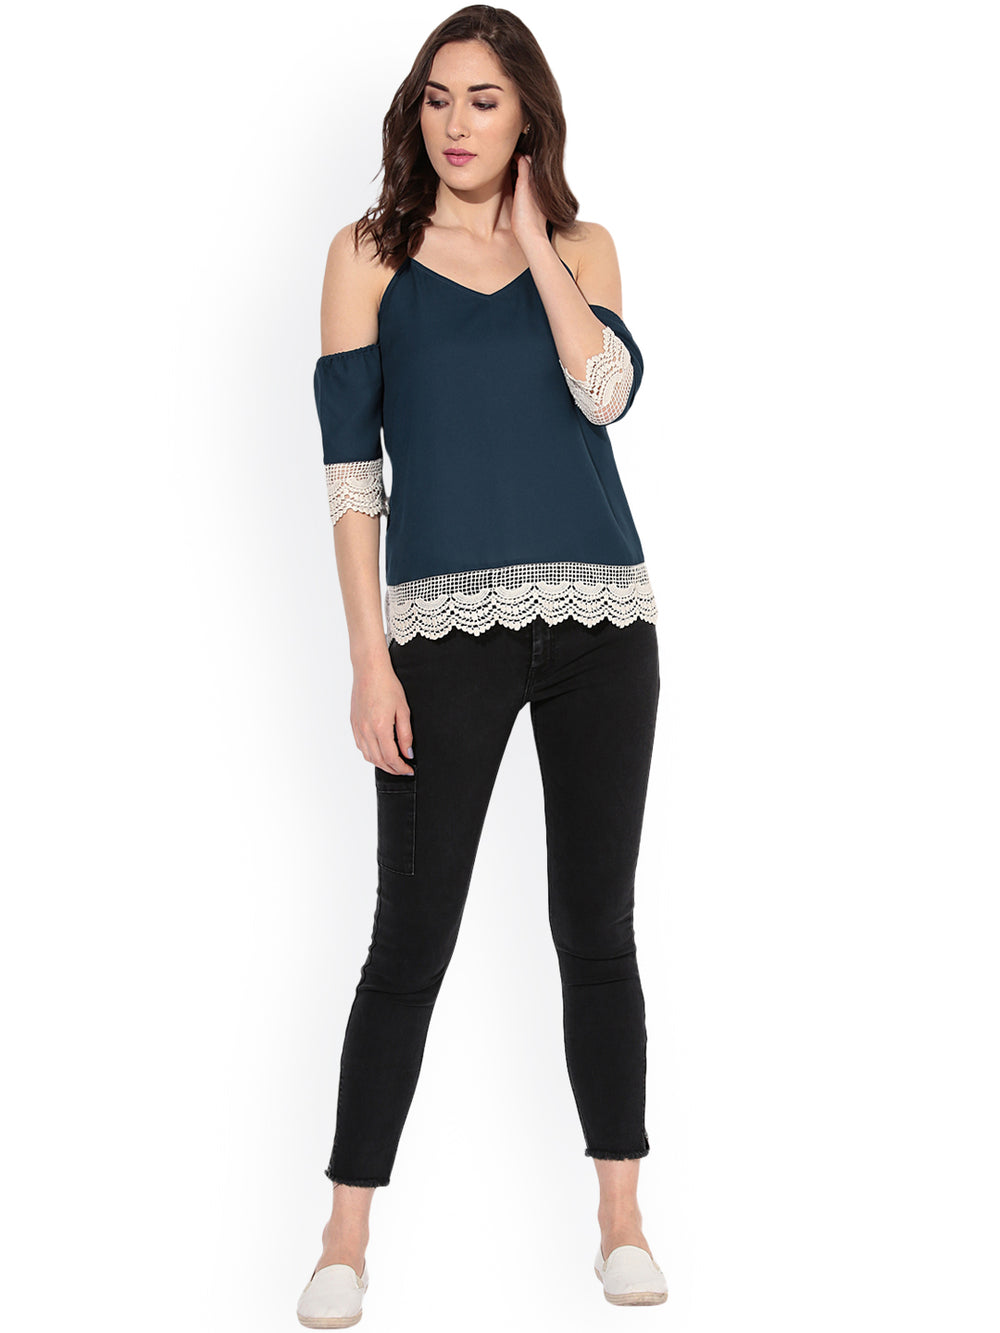 Besiva Women Teal Blue Cold Shoulder Top with Lace Trims